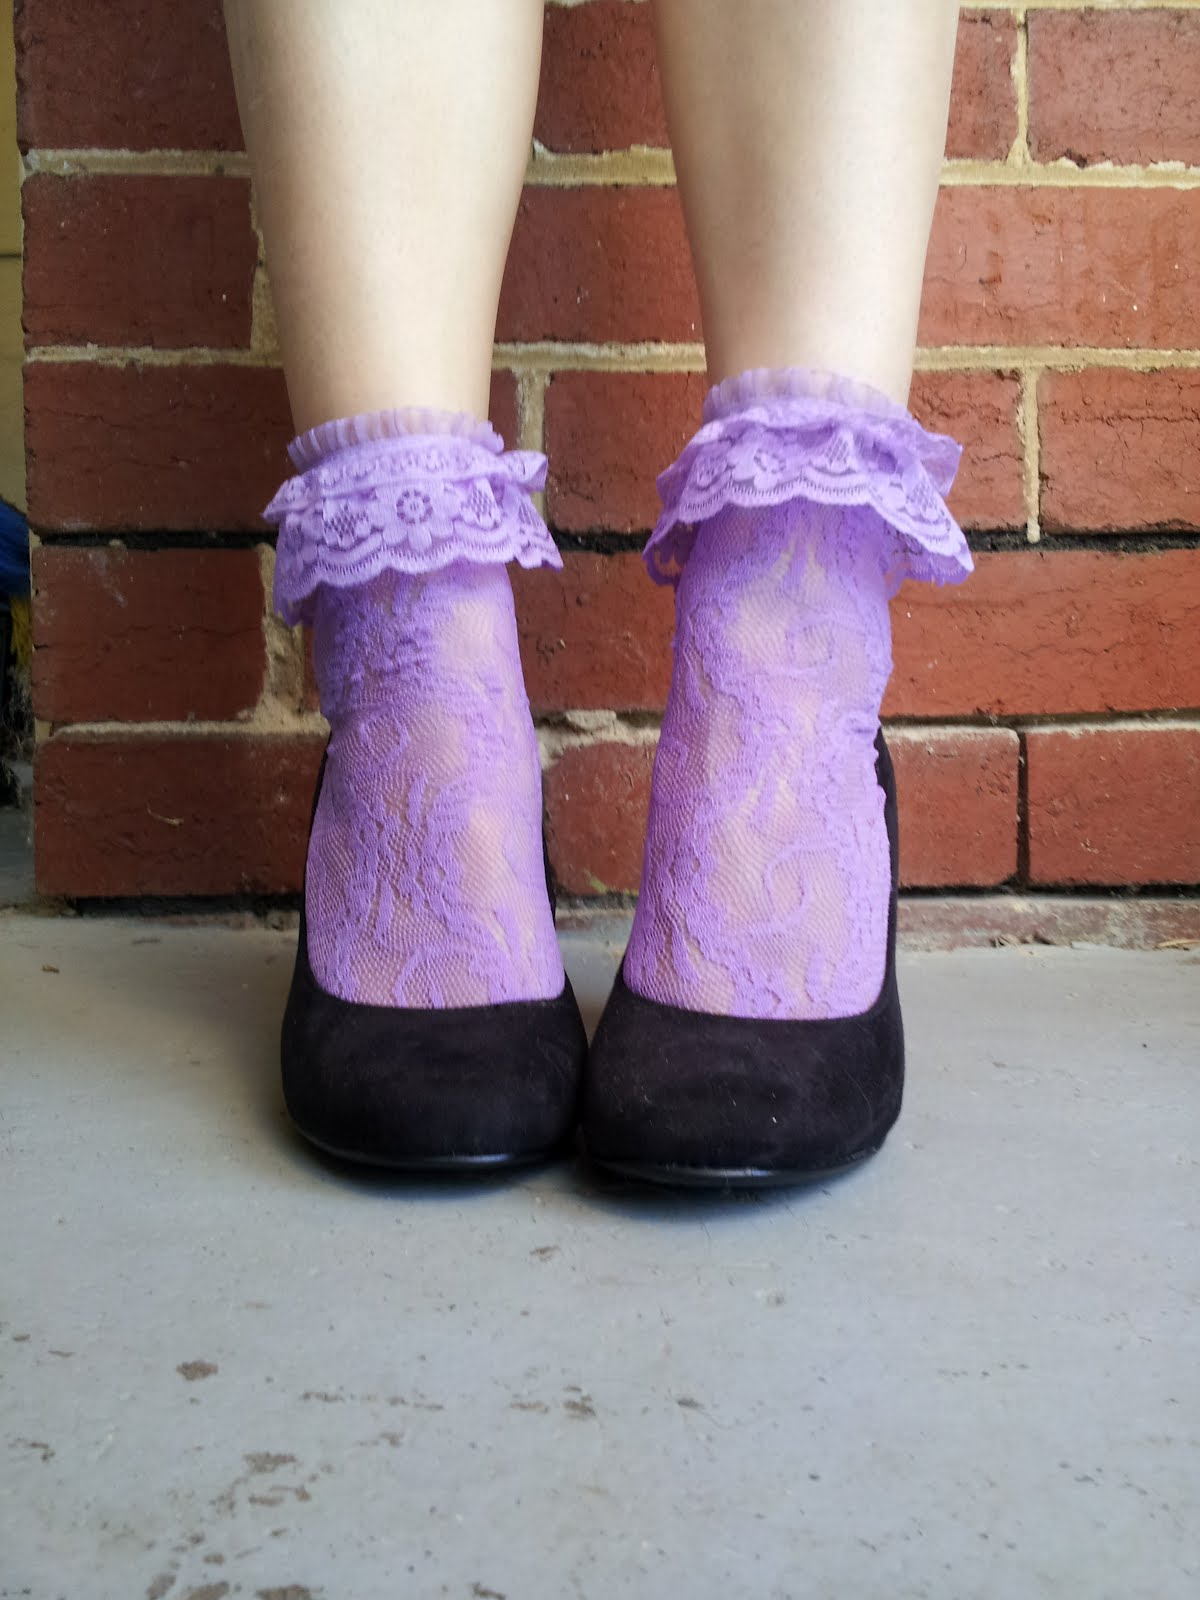 Patent An Idea >> Miss Claire's Sewing Blog: Socks & shoes